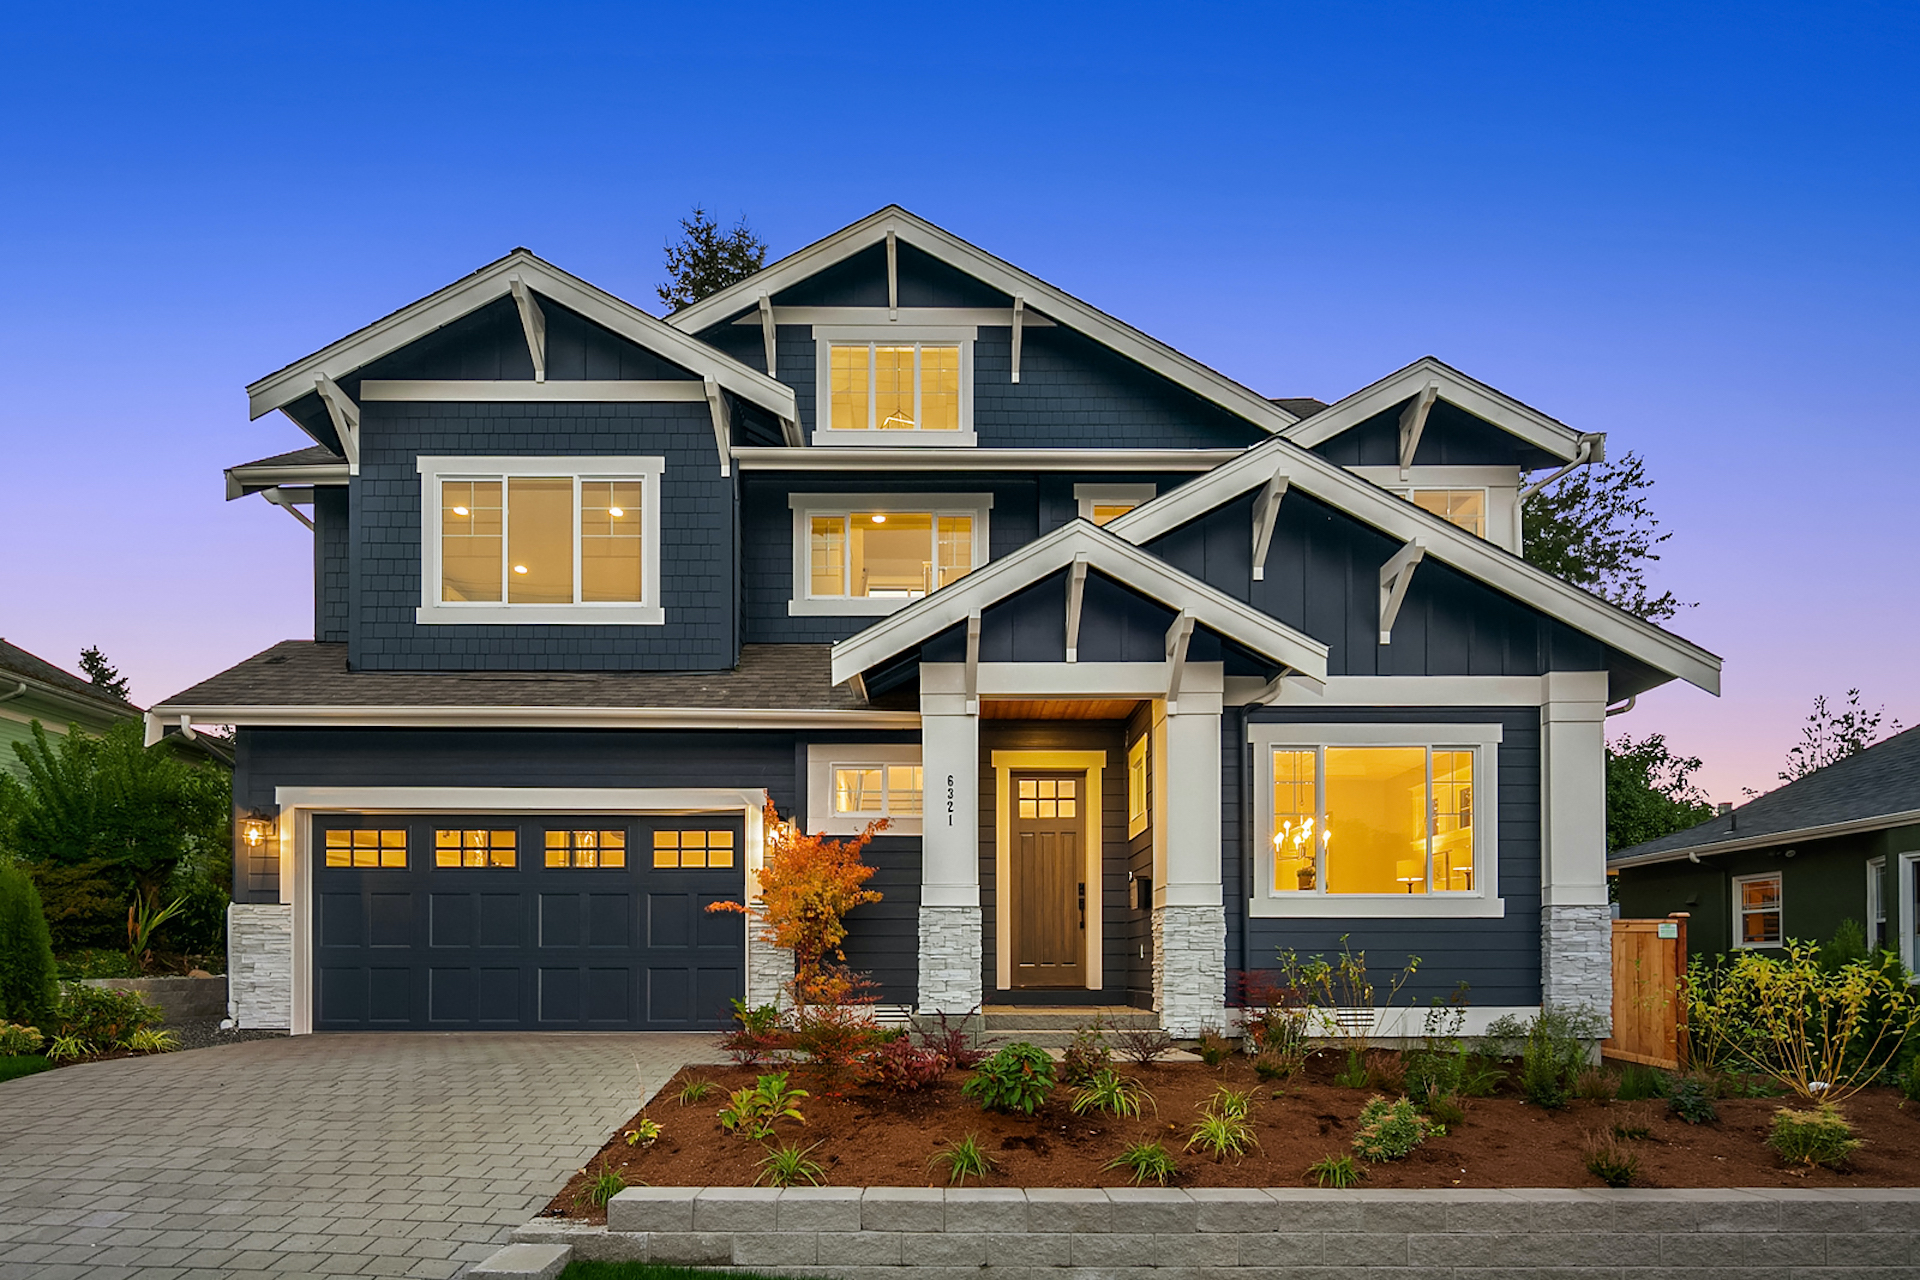 4,244sf New Home